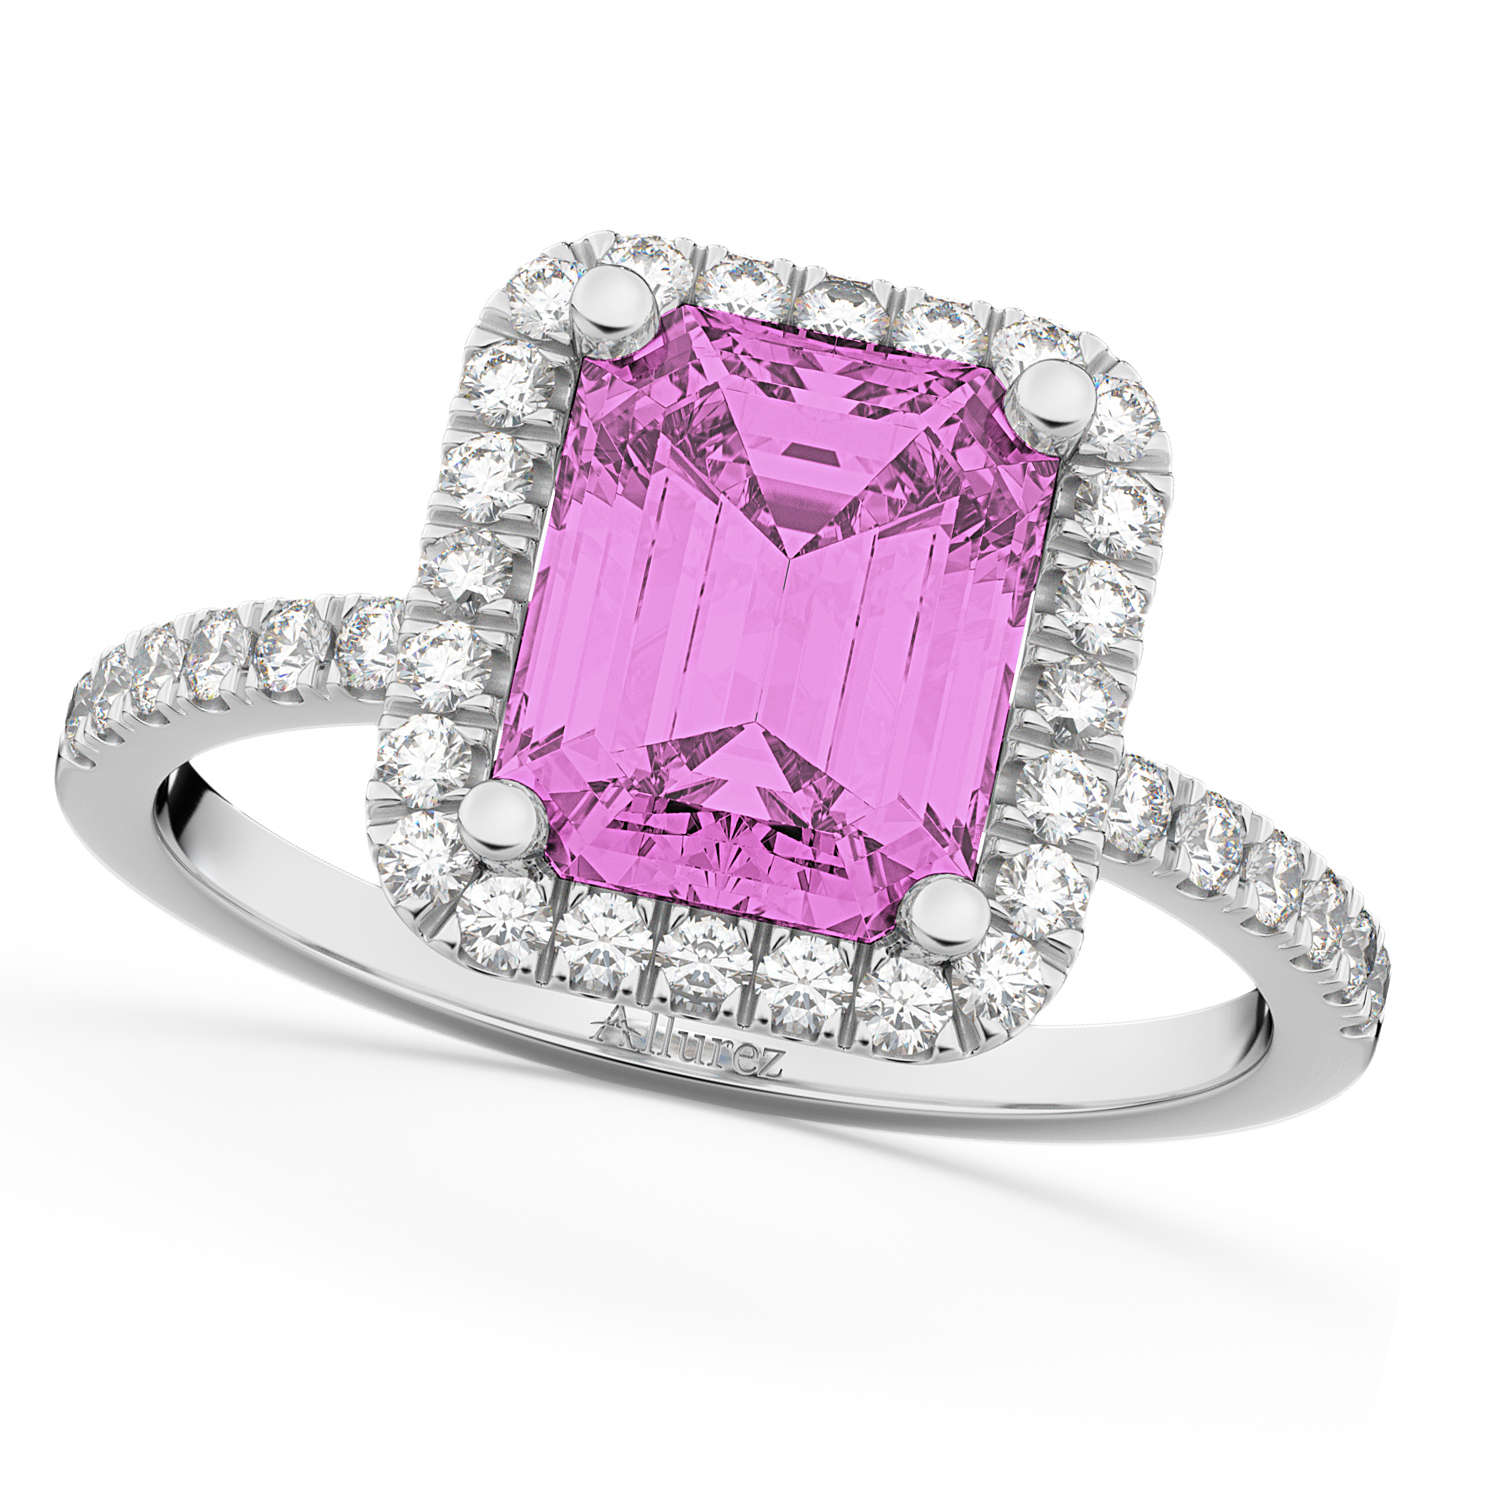 Pink Sapphire & Diamond Engagement Ring 14k White Gold 3.32ct